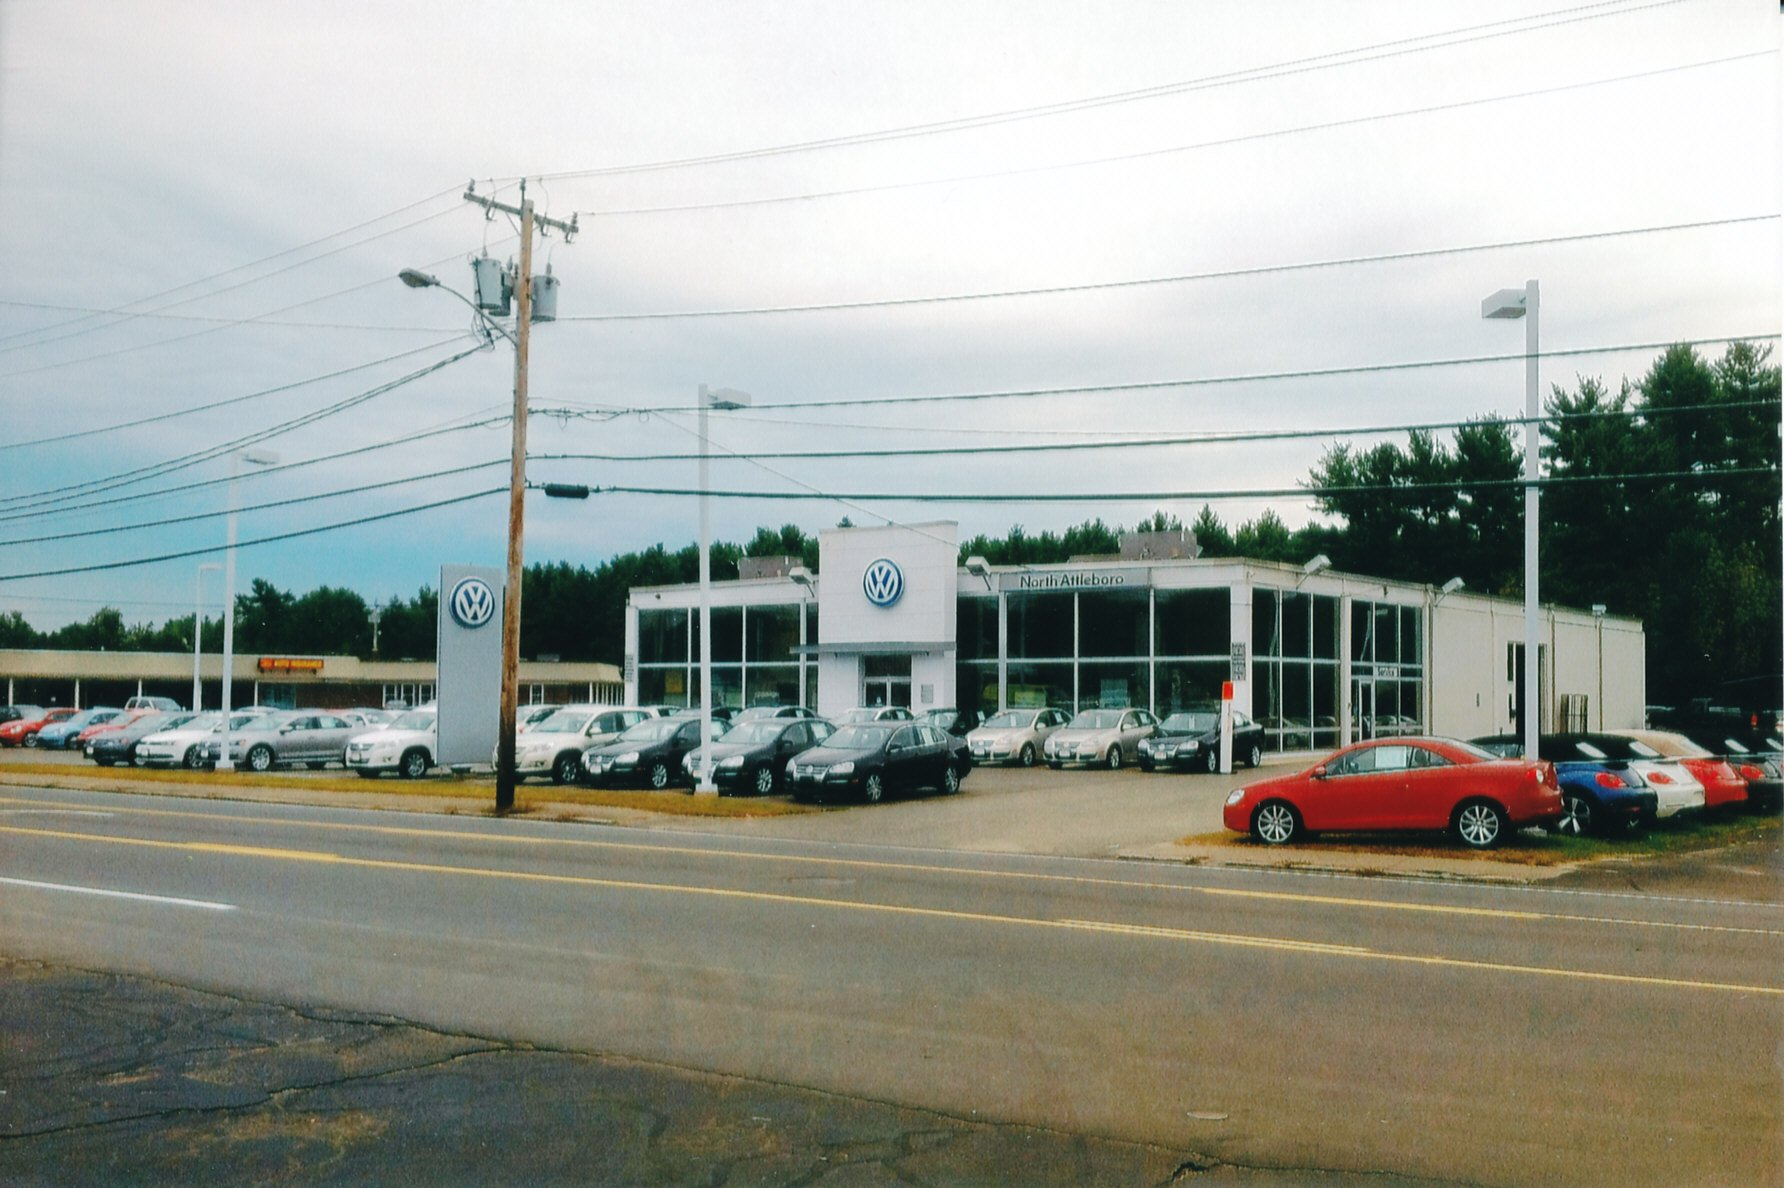 TheSamba.com :: Volkswagen of North Attleboro - North Attleboro, Massachusetts